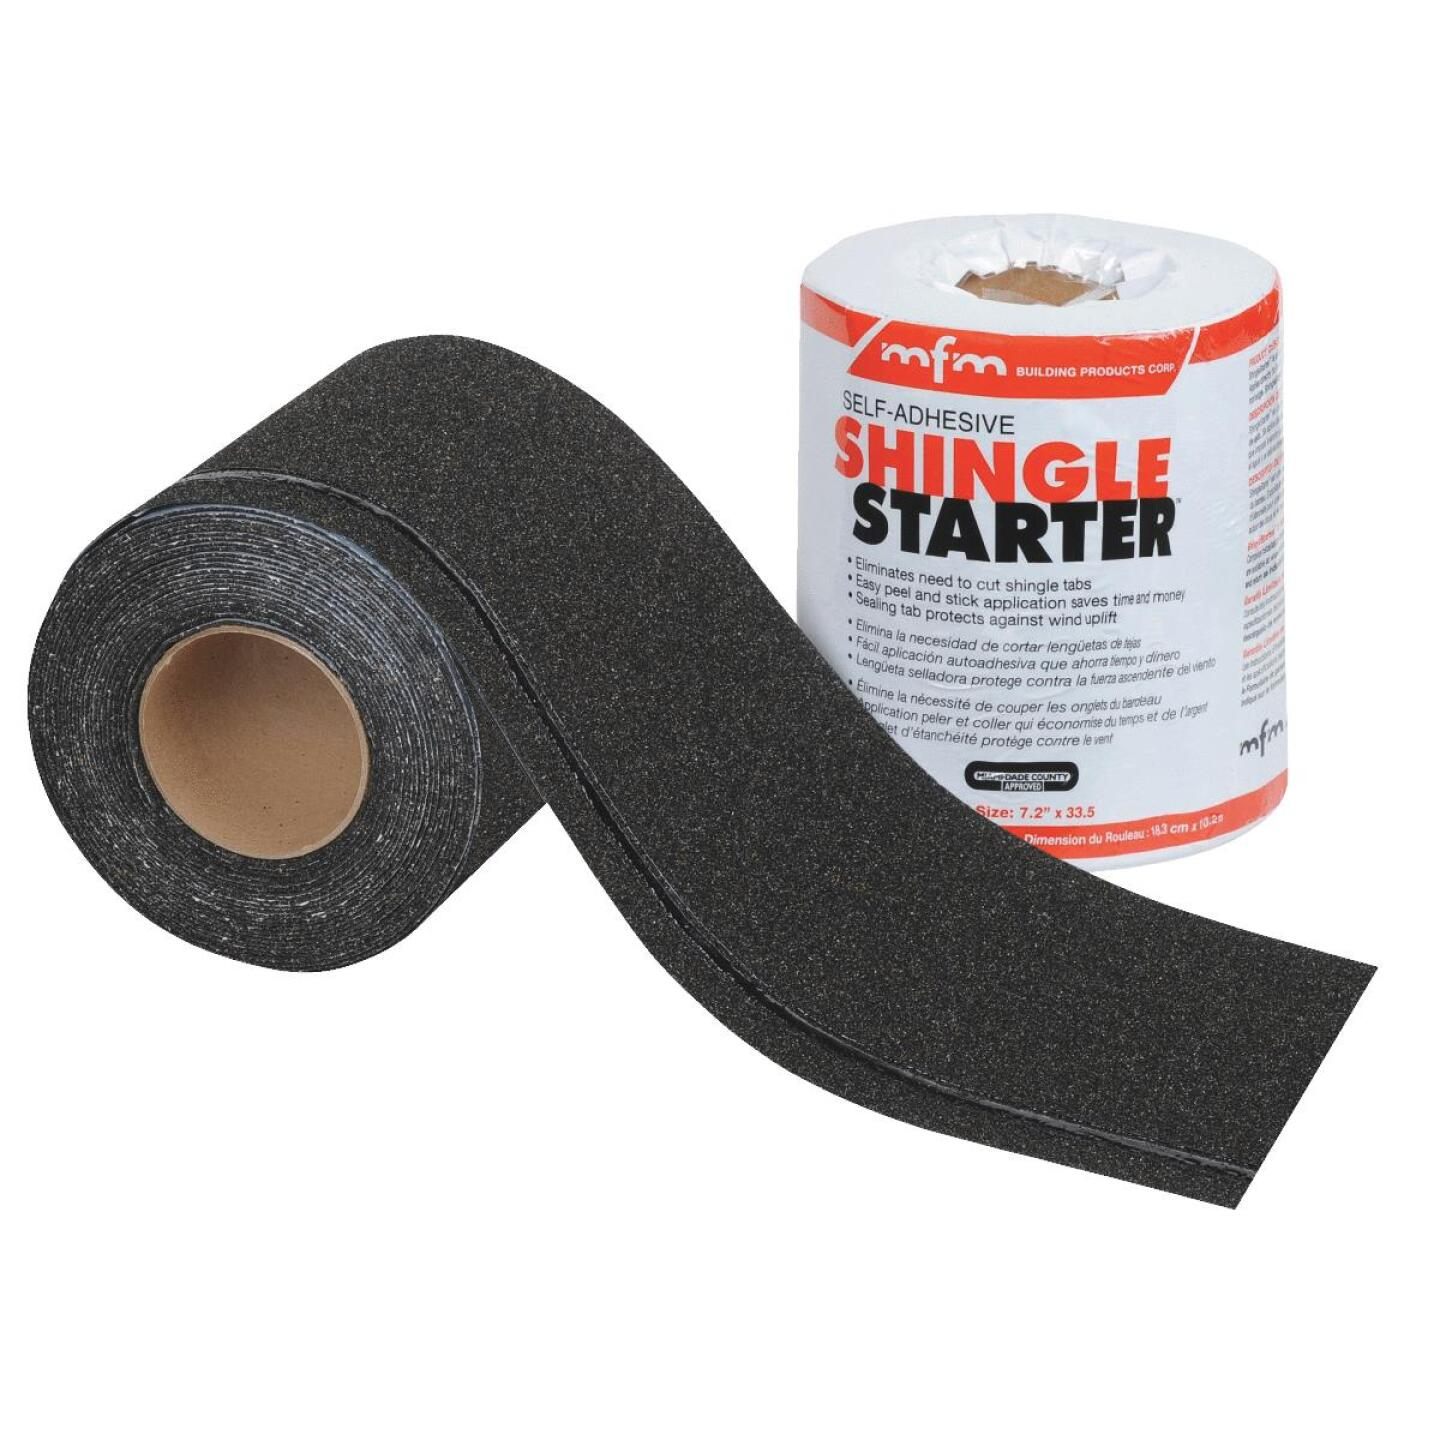 MFM 7.2 In. X 33.5 Ft. Self-Adhesive Shingle Starter Image 1